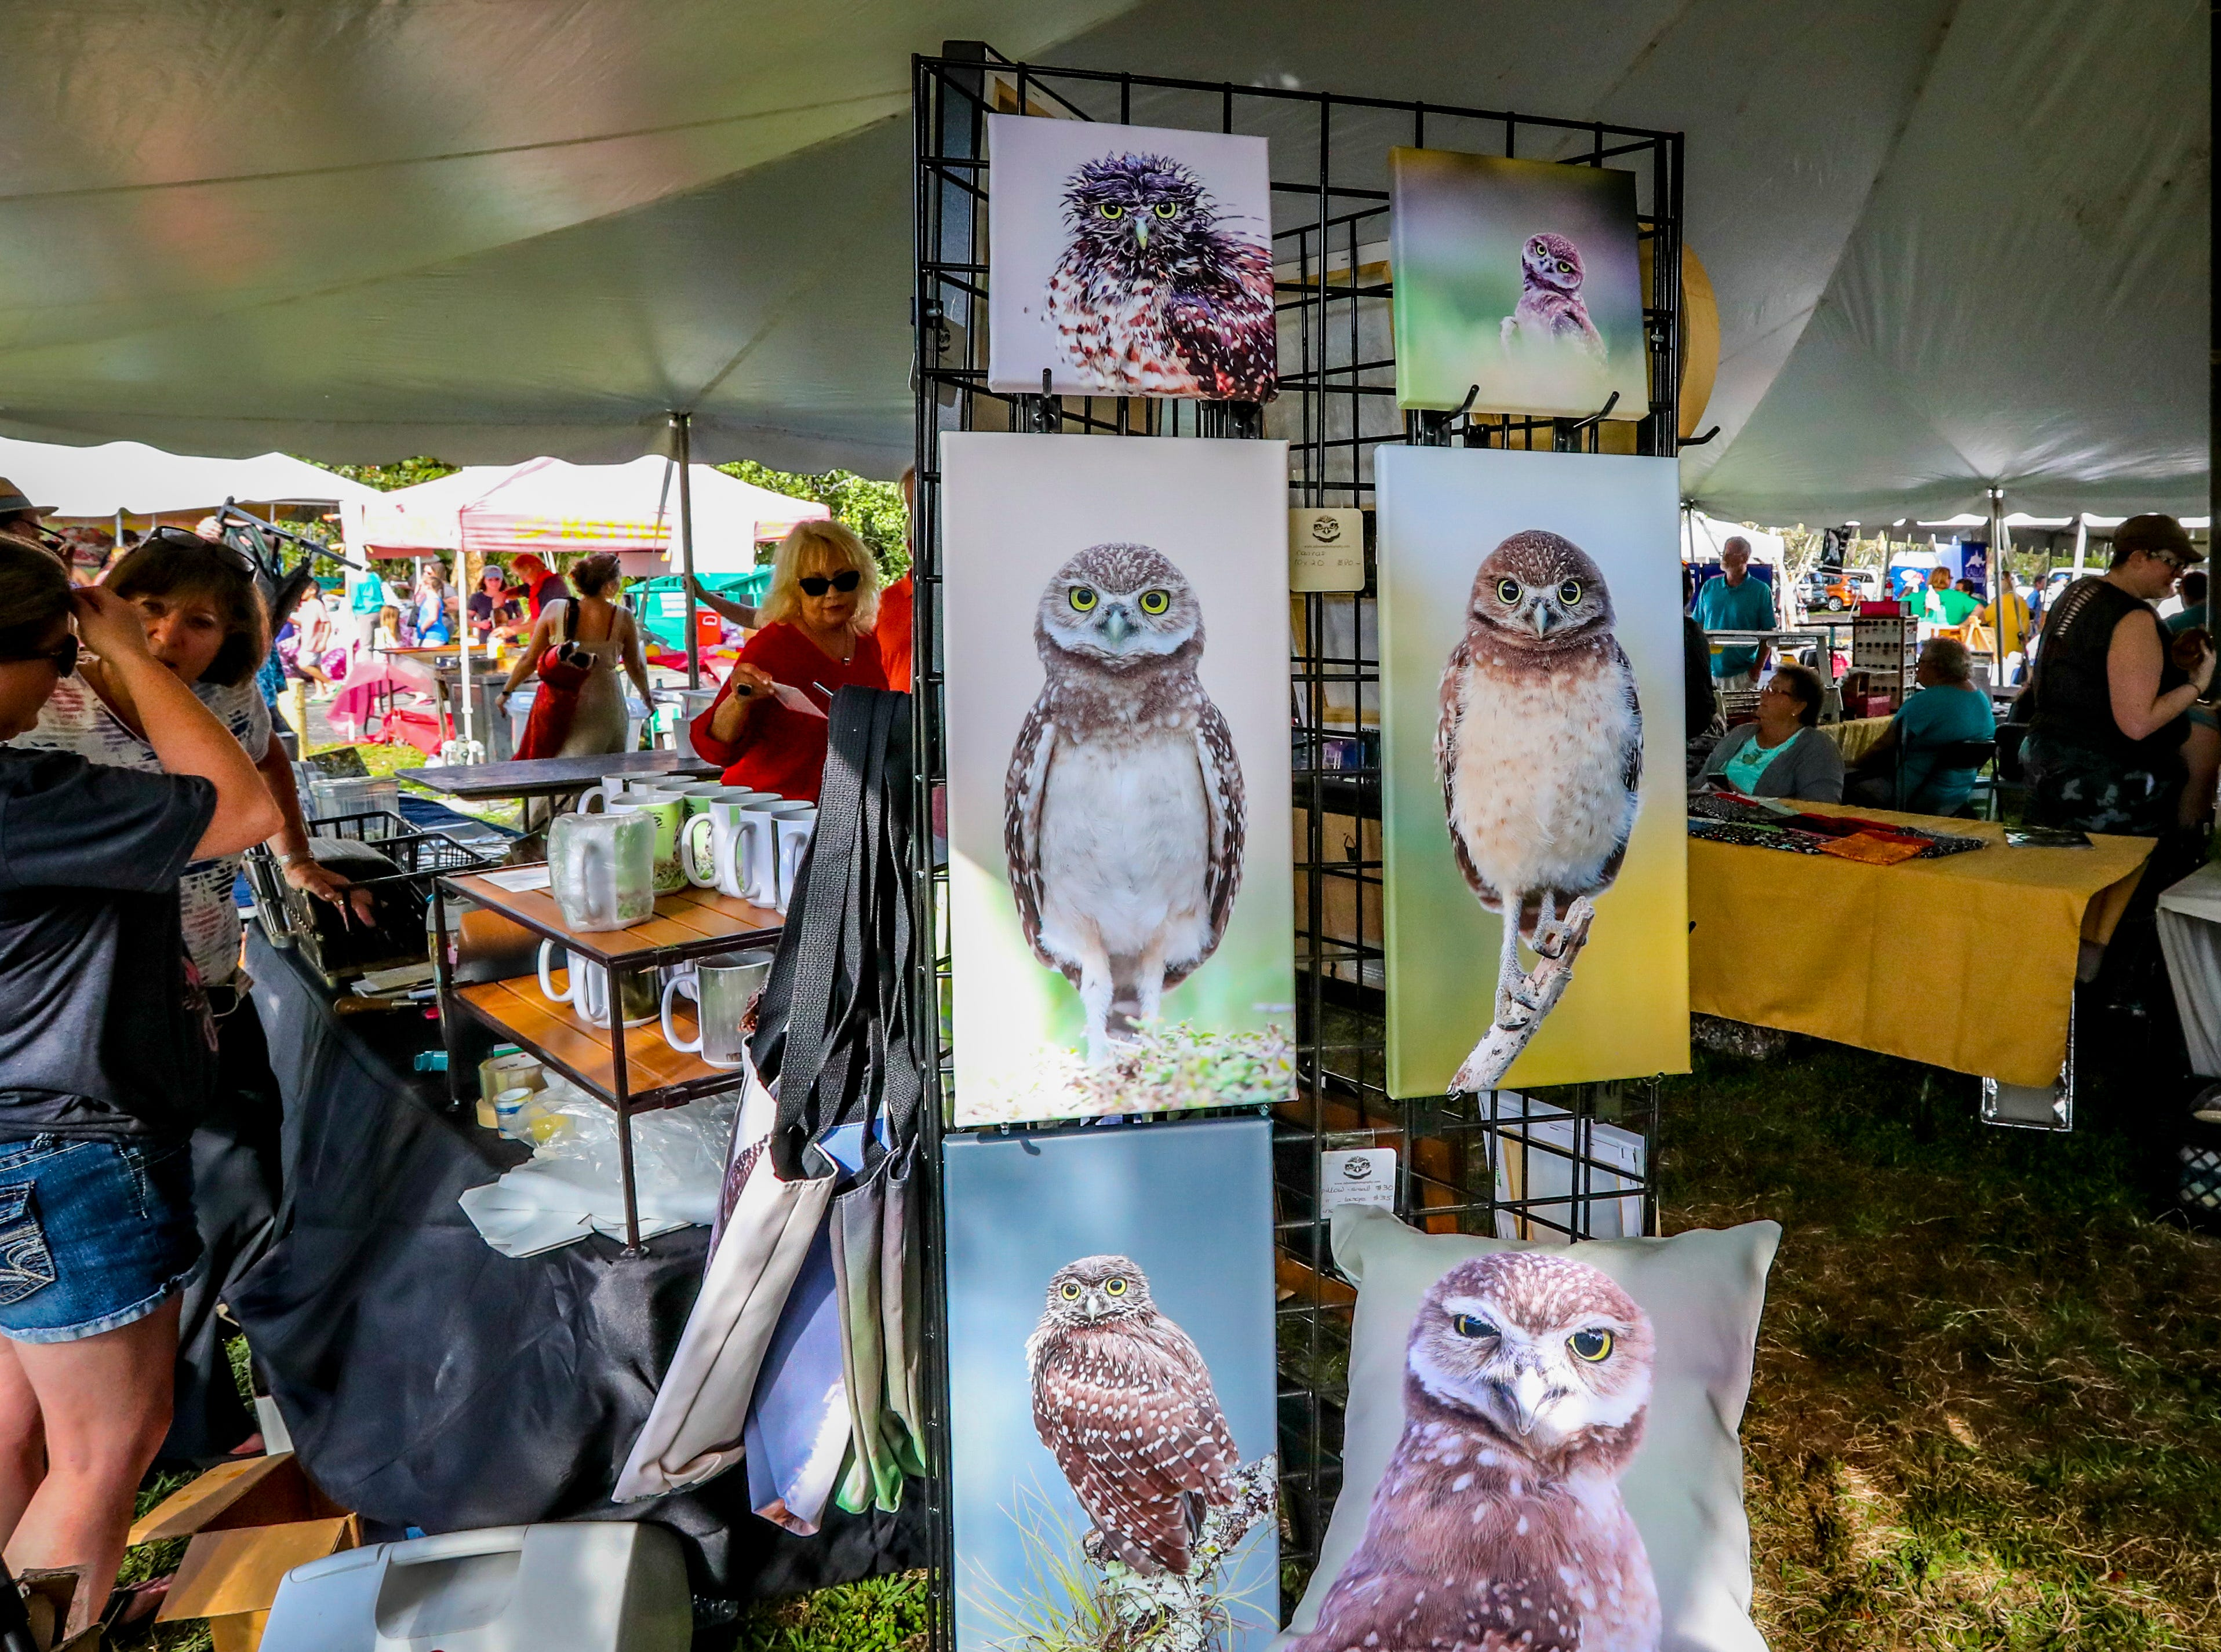 A booth has prints for sale of the burrowing owl. Cape Coral Florida's, official City bird was celebrated during the 17th Annual Burrowing Owl Festival at Rotary Park on Saturday, February 23, 2019. It was a fun day for the whole family, filled with entertaining and educational programs, hands-on activities for children, live animals, guided nature walks, butterfly house tours, bus tours to active owl burrows.